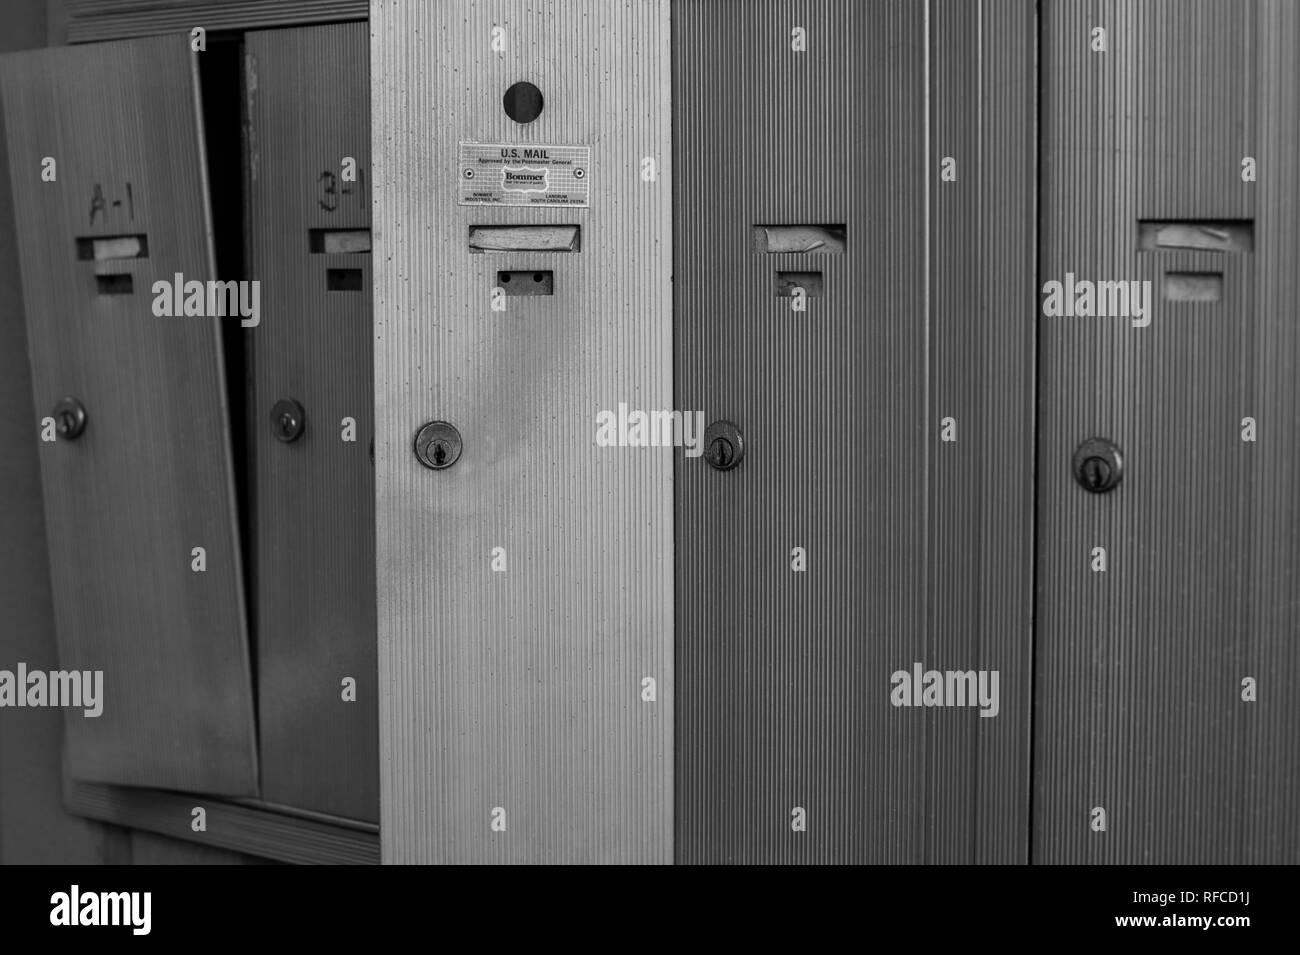 Mailboxes broken into - Stock Image